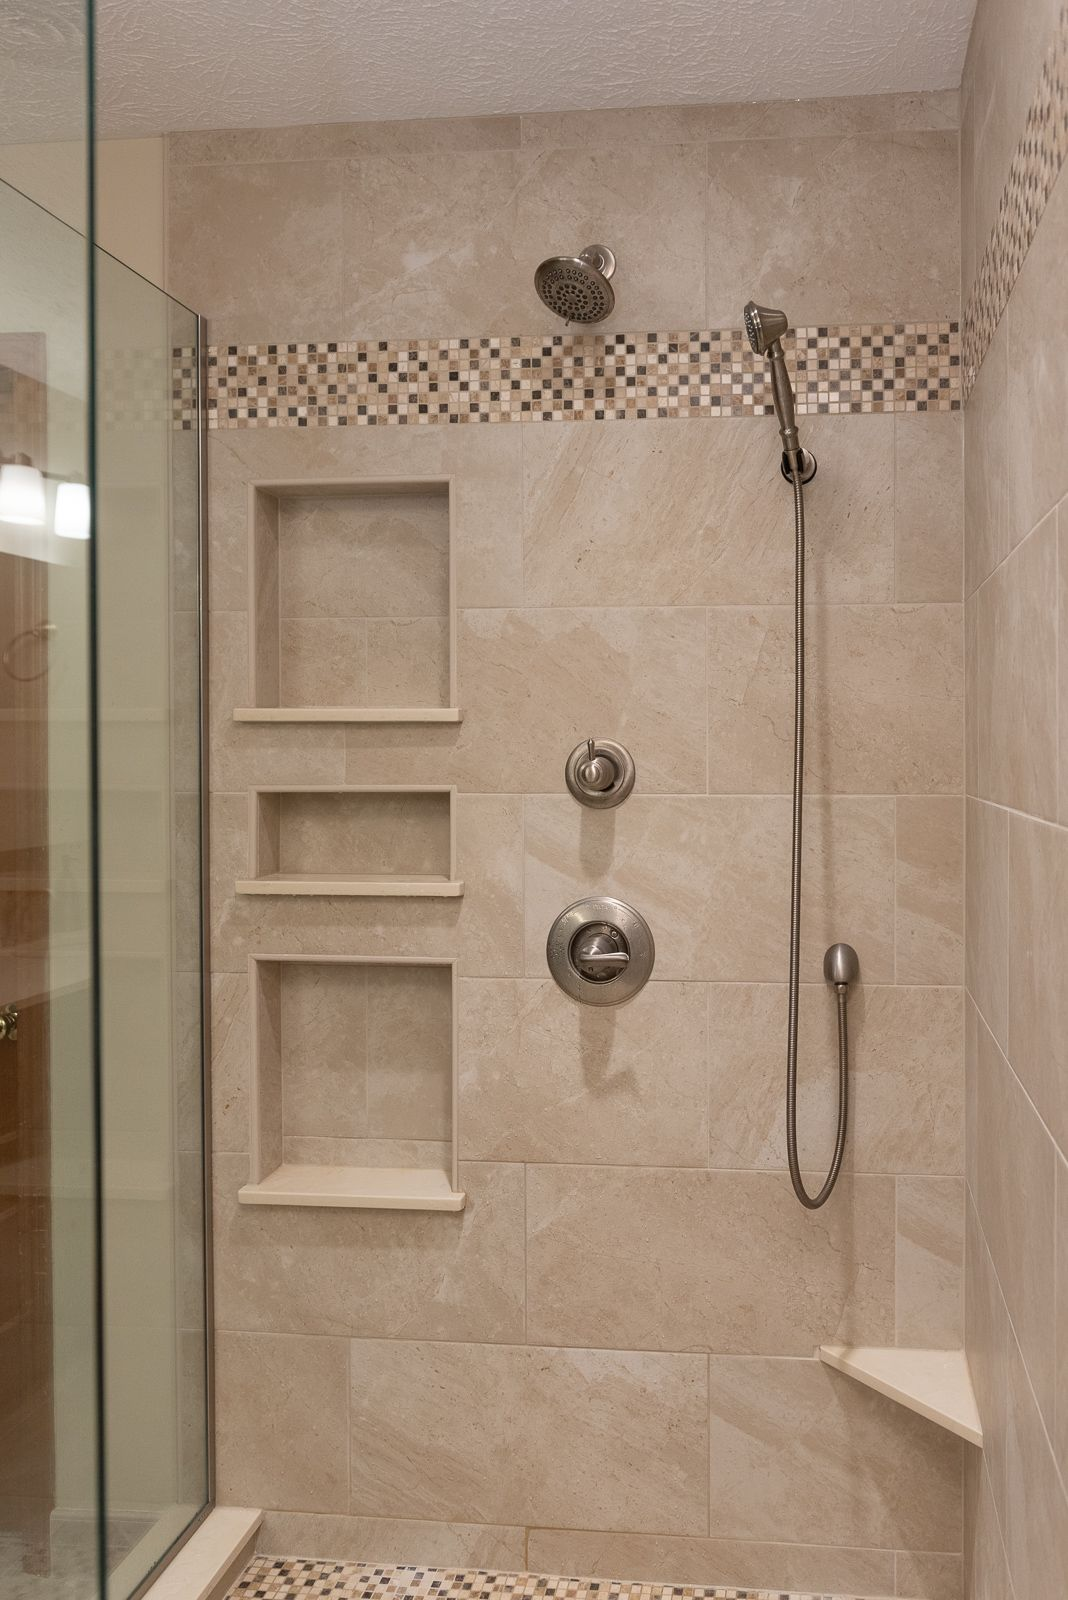 Decorative Tile Band Recessed Shelving Showers In 2019